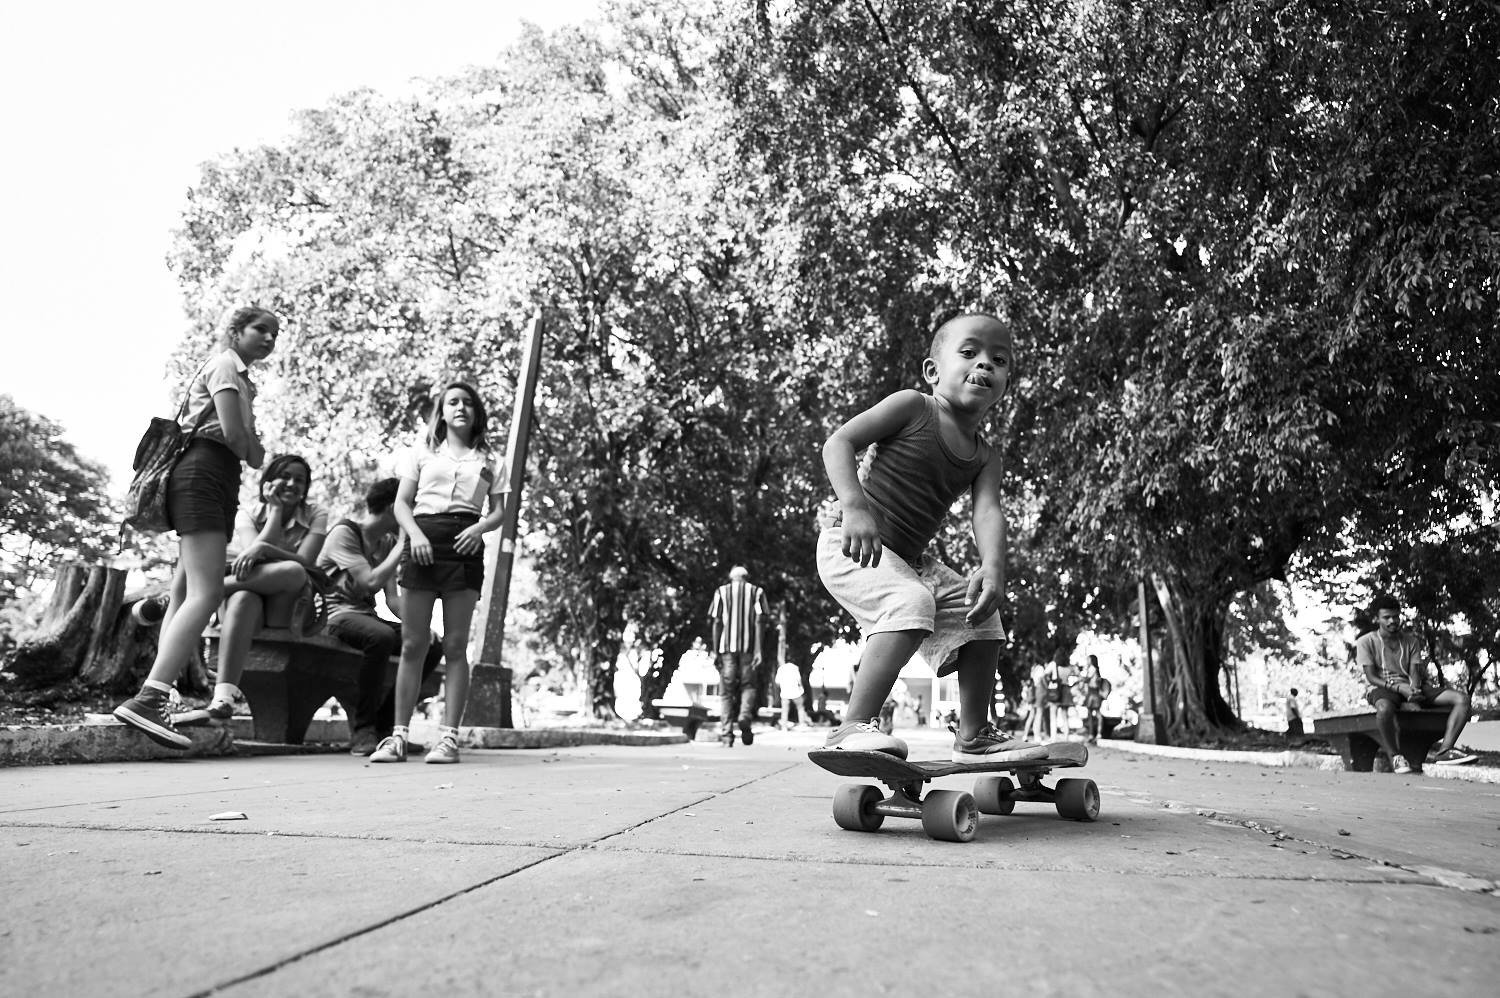 Photograph of young boy riding a skateboard at Parque Acapulco